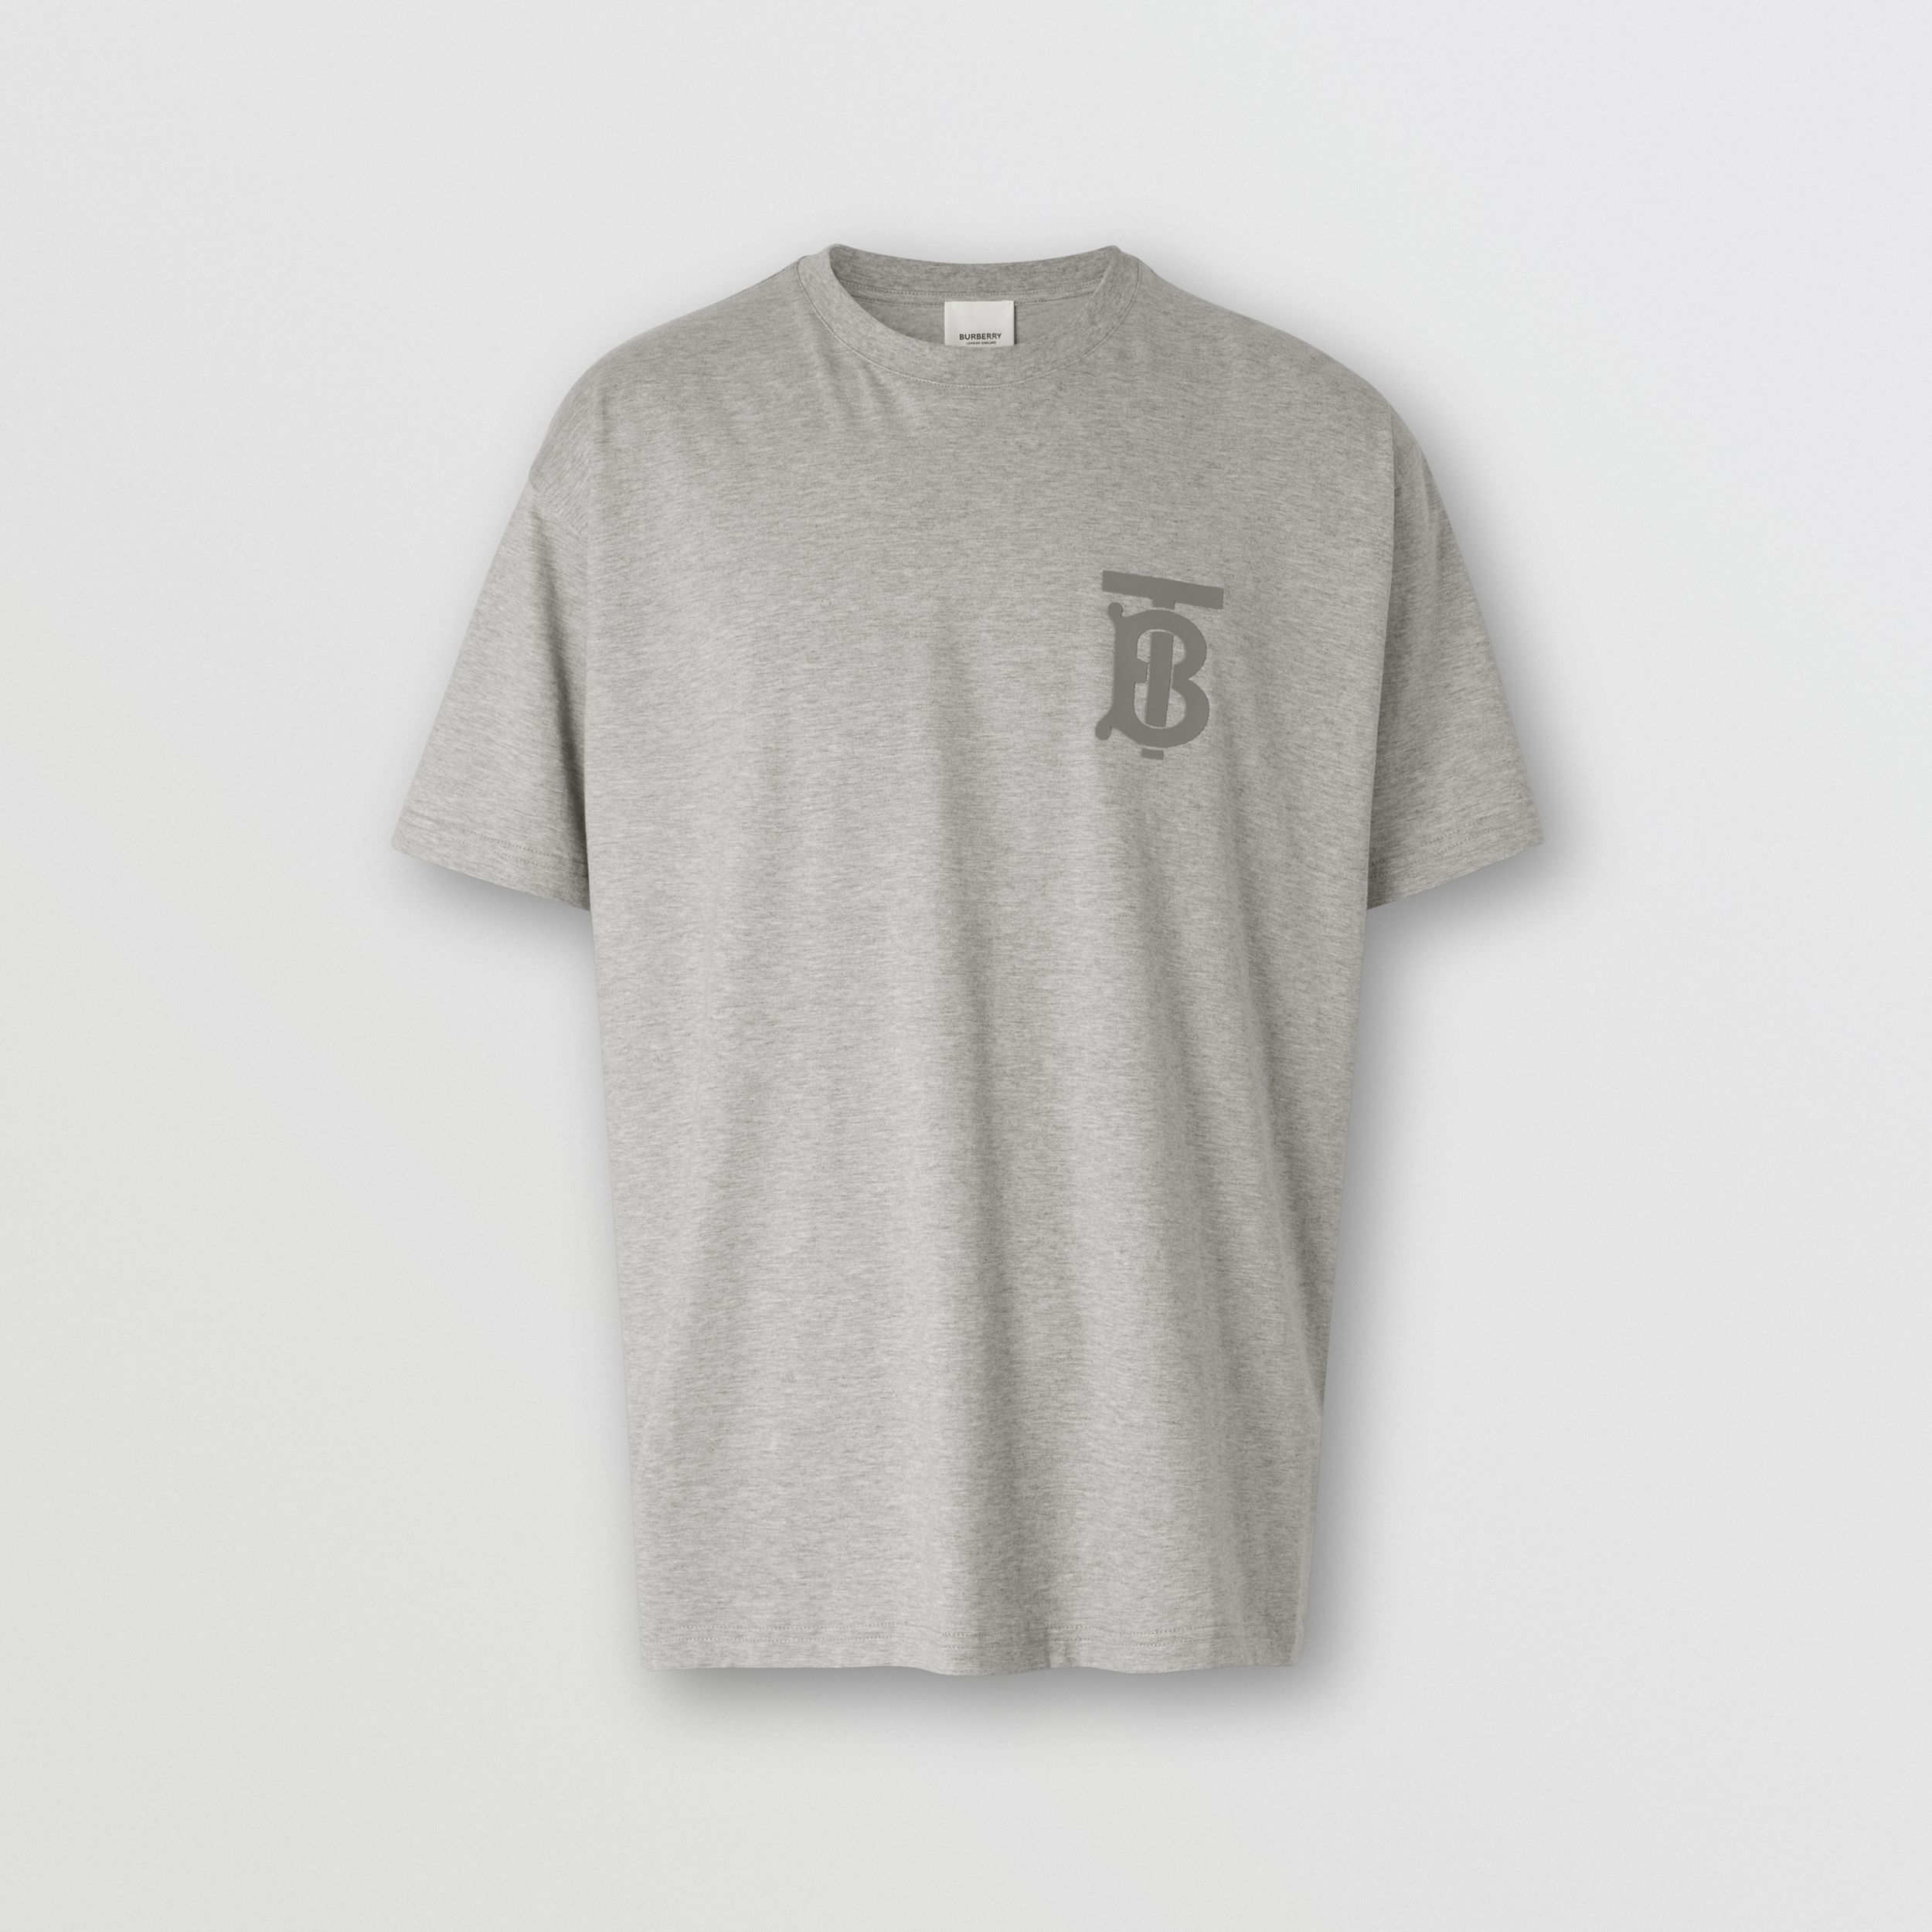 Monogram Motif Cotton Oversized T-shirt in Pale Grey Melange - Men | Burberry Hong Kong S.A.R. - 4